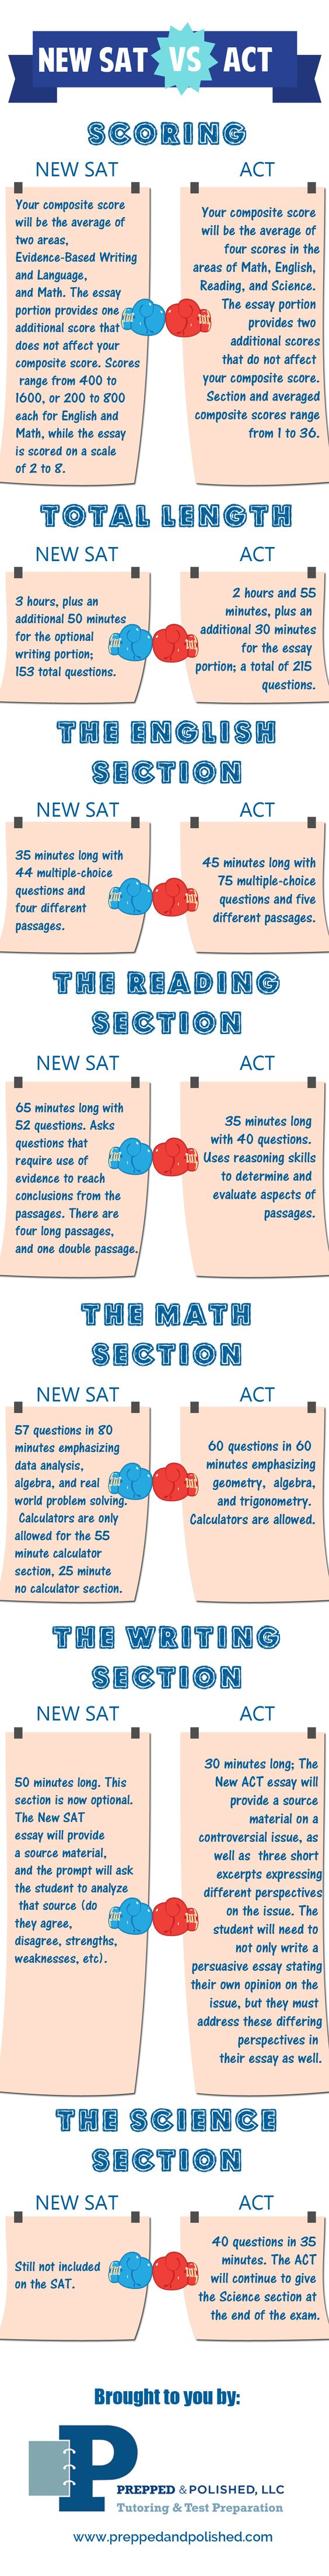 New SAT vs ACT Infographic Not sure which test is best for you, the New SAT or the ACT? Check out our colorful, fun infographic detailing the differences bw the NewSAT and the ACT Test. Visit Preppedandpolished.com for SAT or #ACT tutoring and testprep